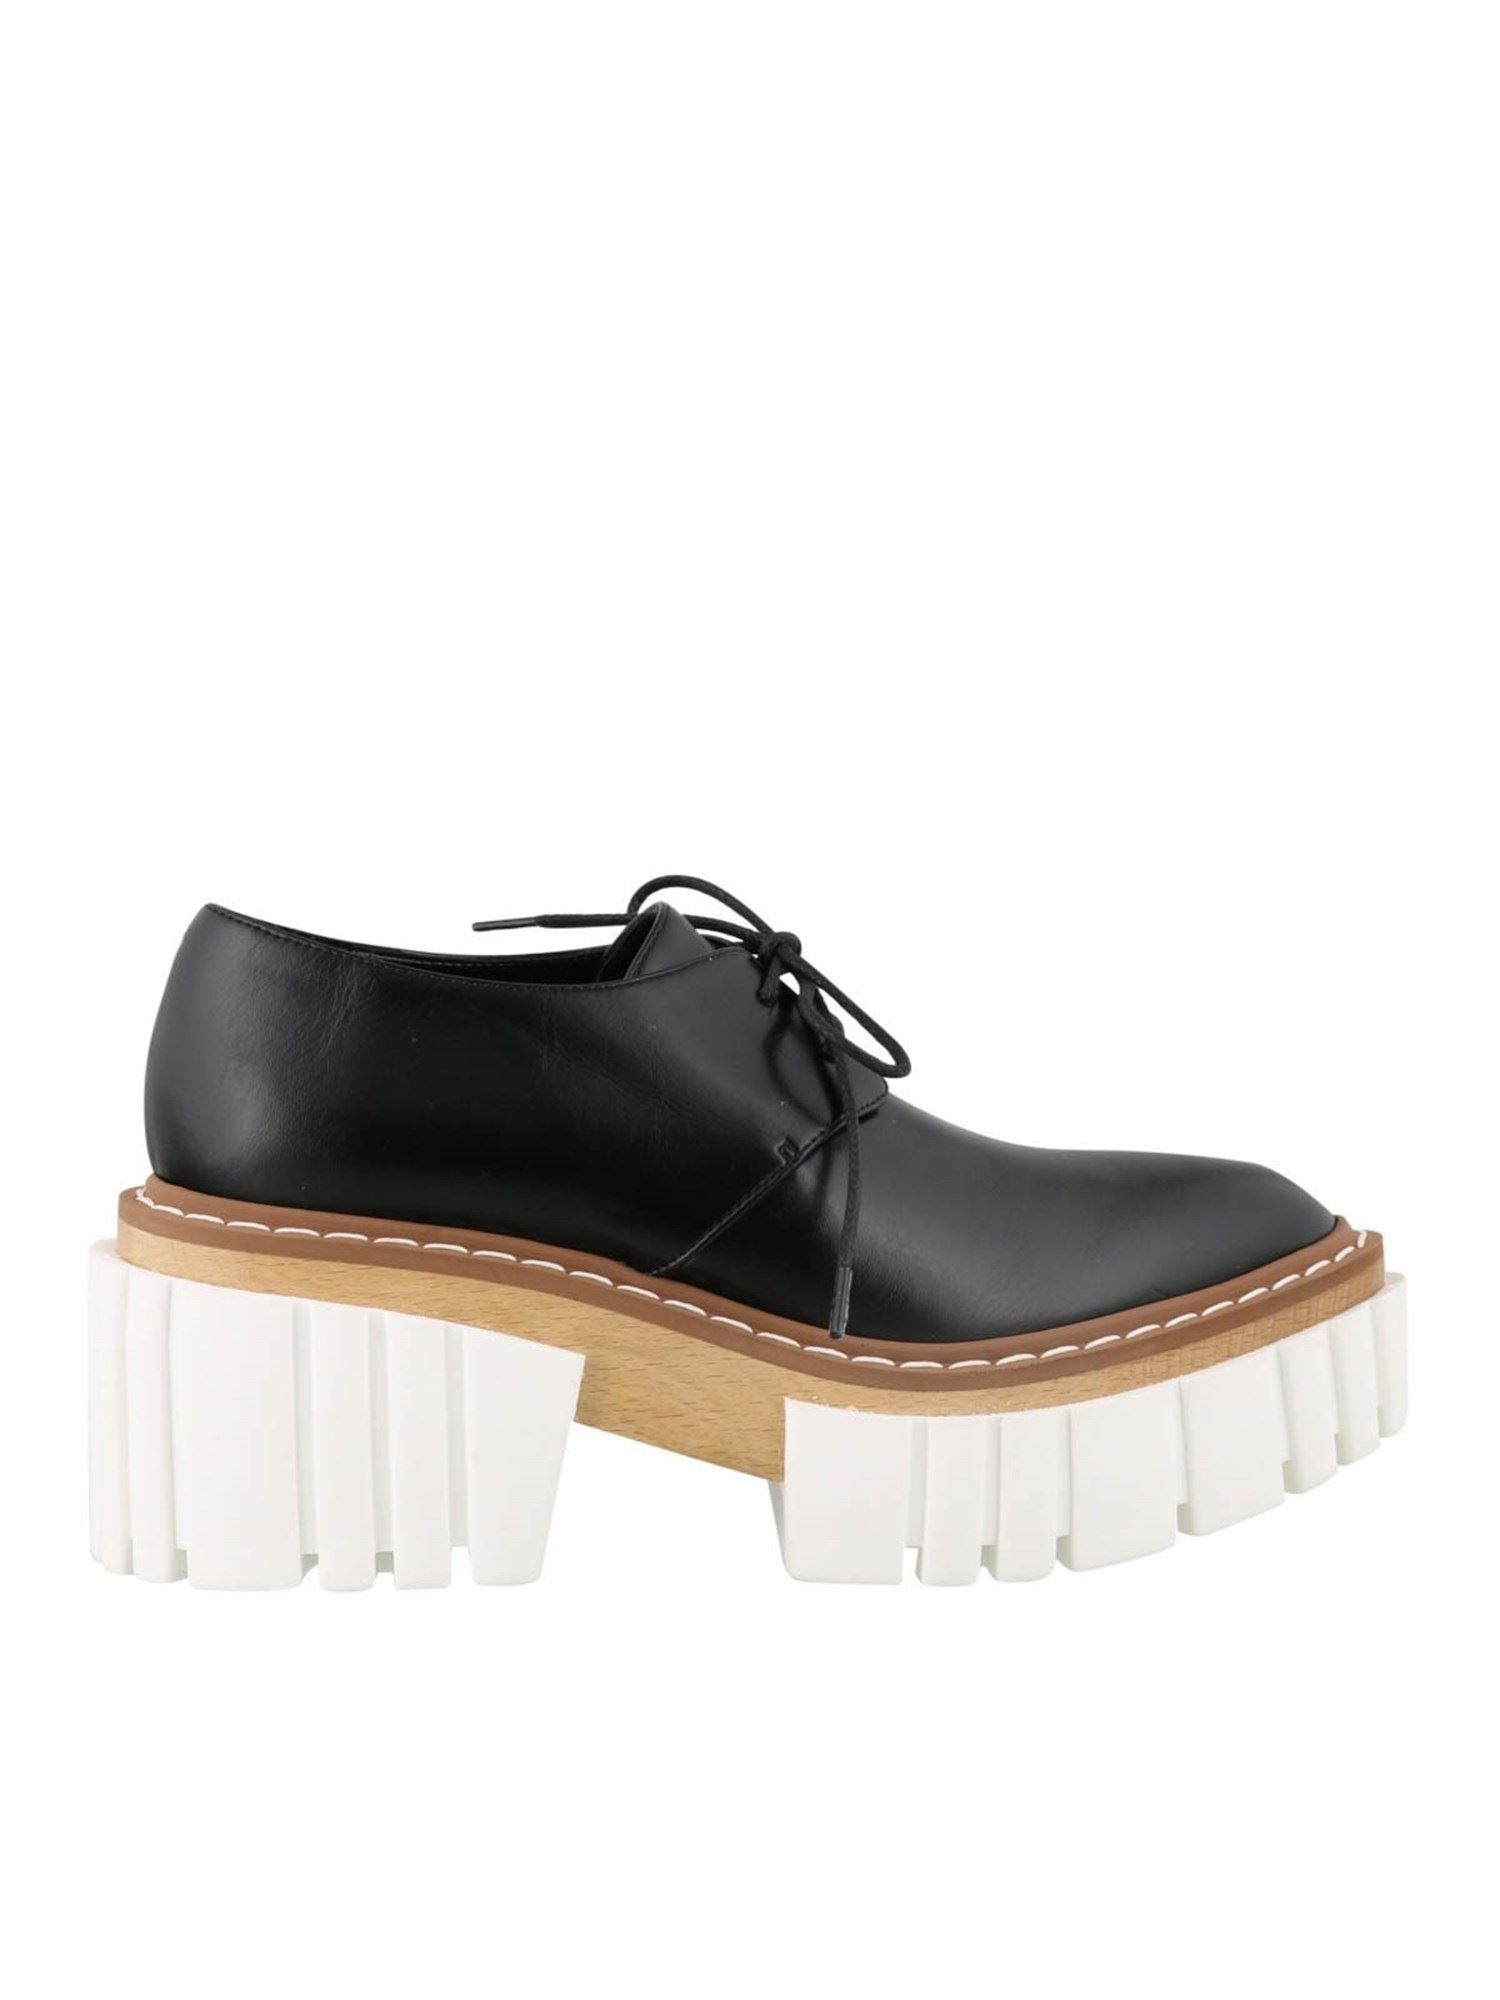 STELLA MCCARTNEY STELLA MCCARTNEY EMILIE LACE-UPS IN BLACK